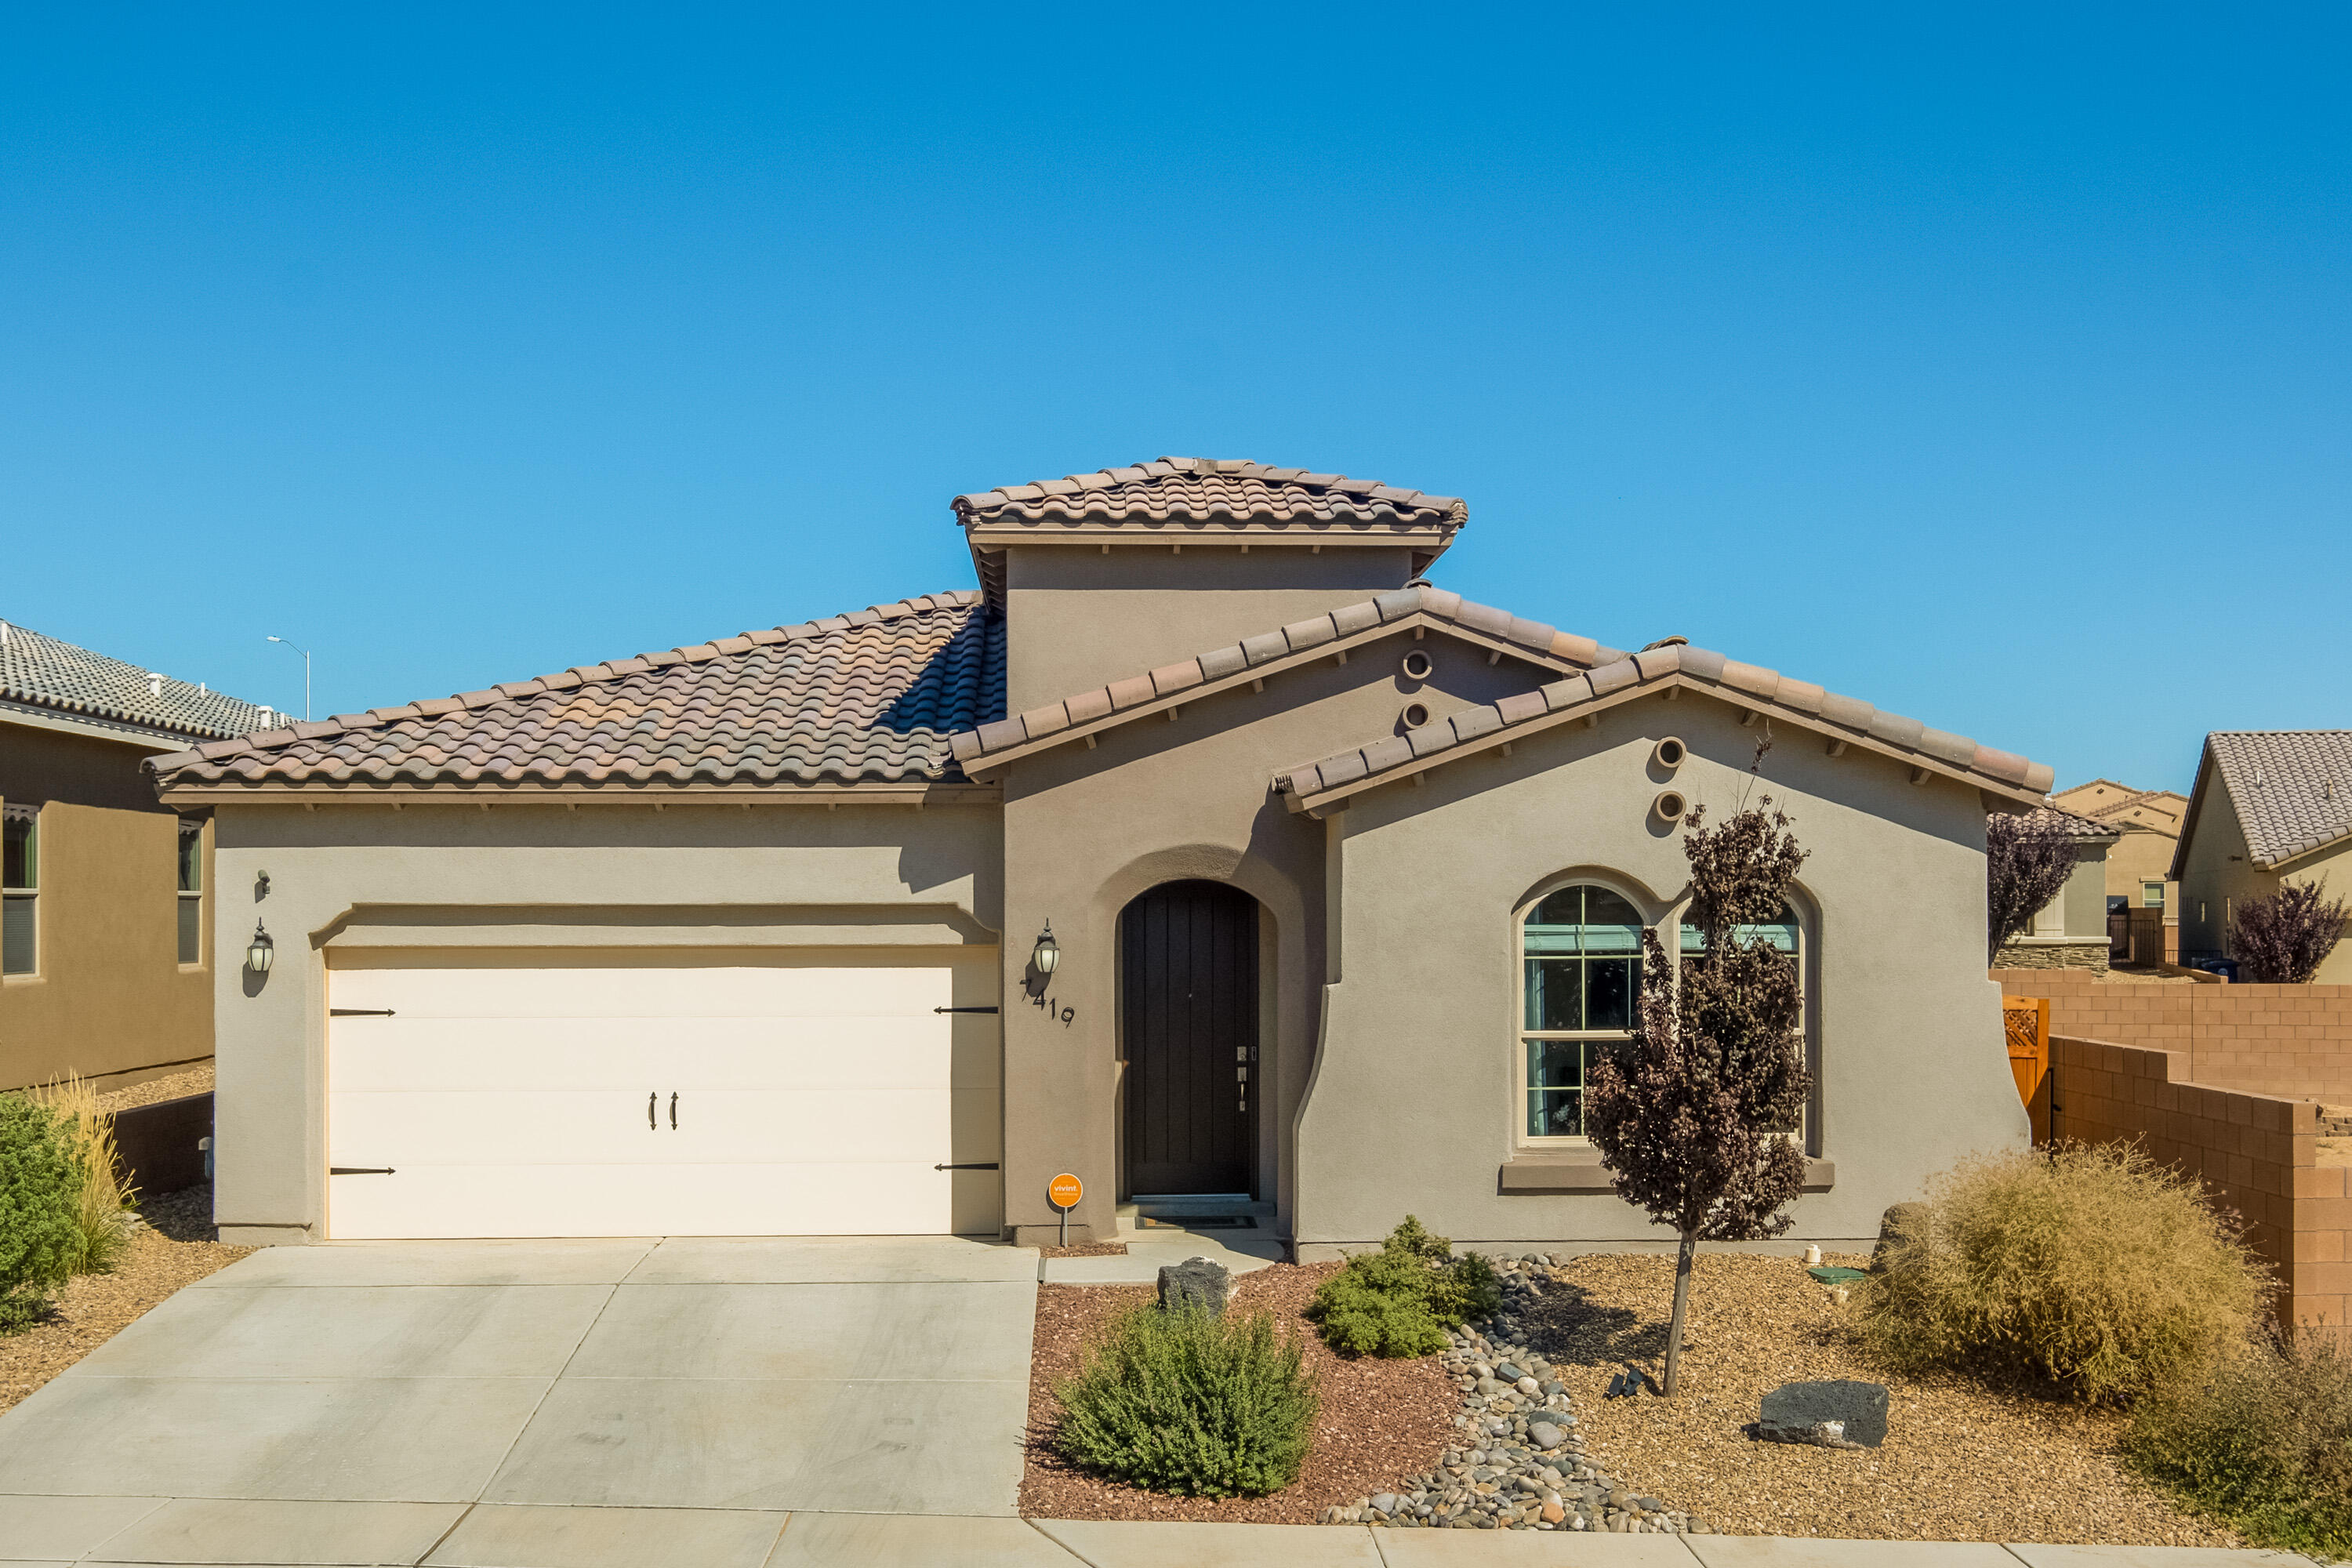 Gorgeous 4 bedroom Haakes Brothers home in move-in condition in lovely,  subdivision. No need to buy new and spend more when this home is young, move in ready and has landscaping, window coverings, Vivant smart home system, water softener, built in Pest Defense system and tankless water heater. Home has fabulous kitchen with quartzite counters, striking tile and beautiful cabinetry. The house has beautiful design elements with raised and trayed ceilings, tall doors and lovely tile plank floors. The master is separated from the other bedrooms and the master bath has a wonderful, huge shower and walk-in closet. The backyard has grass with automatic sprinklers and mountain views. The entry to the home feels like a gallery and it's a pleasure to walk in and enjoy this very special home.